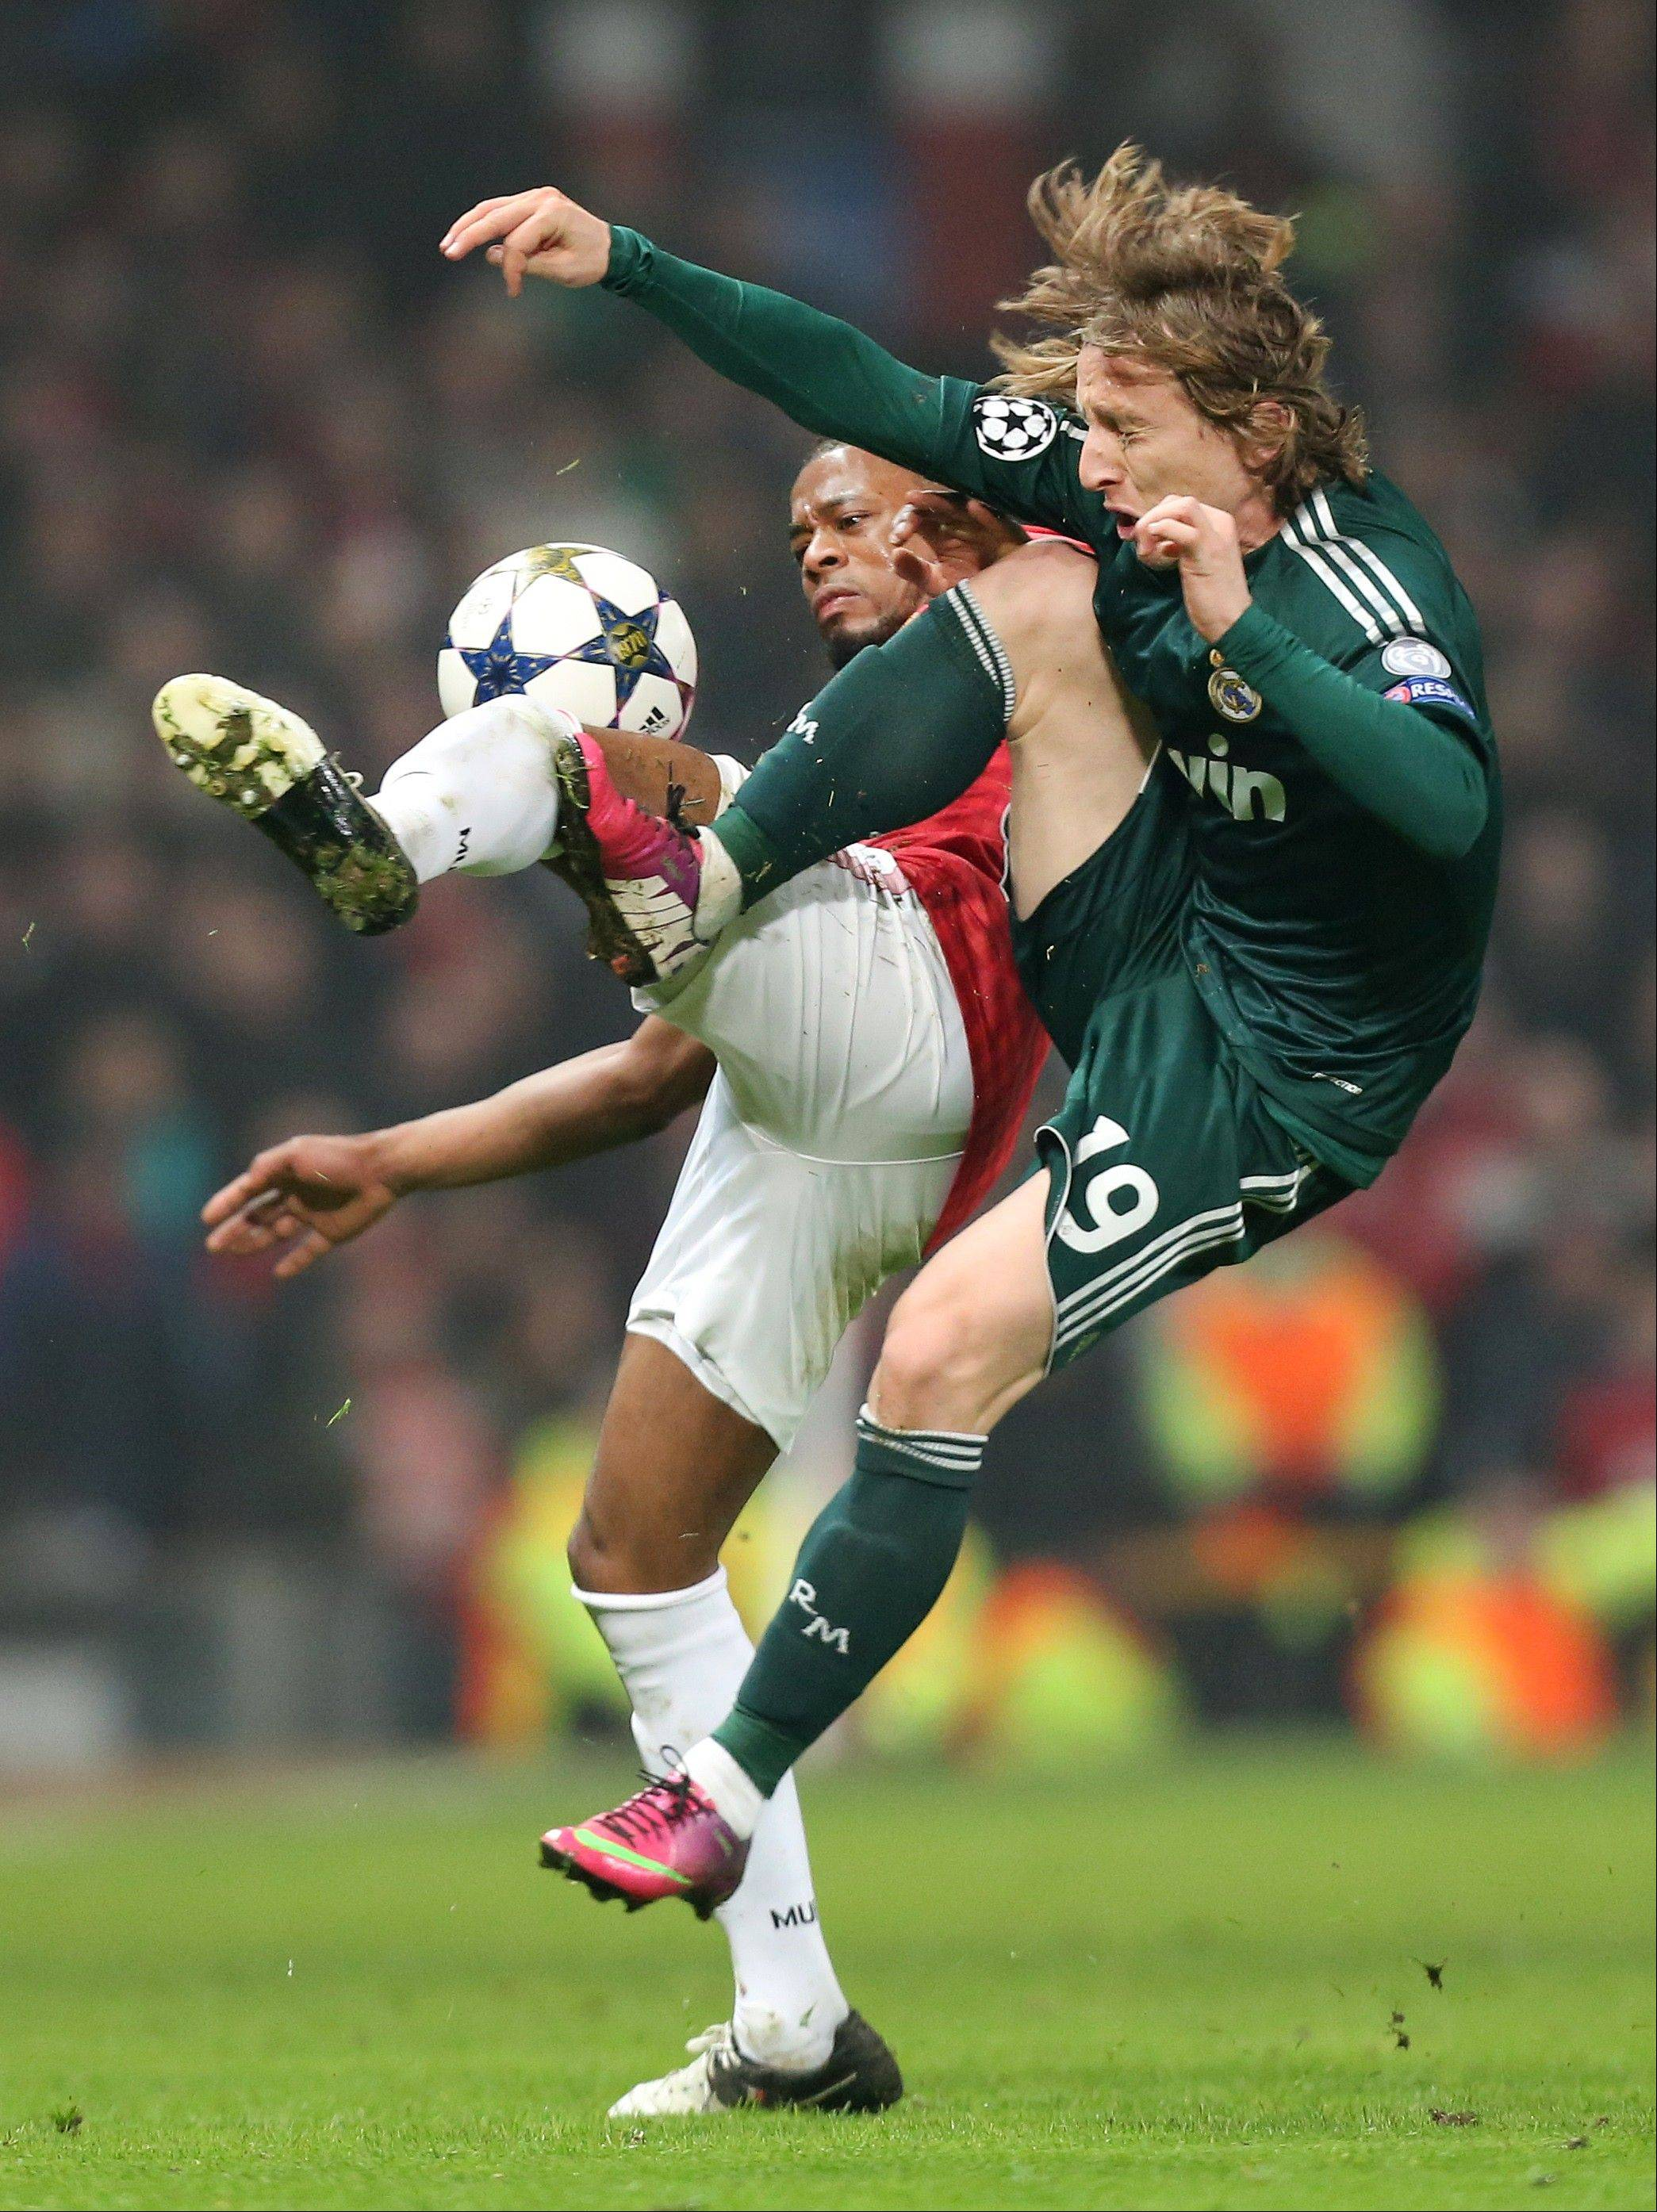 Manchester United's Patrice Evra, rear, challenges Real Madrid's Luka Modric from Croatia during their Champions League round of 16 soccer match at Old Trafford Stadium, Manchester, England, Tuesday, March 5, 2013. (AP Photo/Jon Super)